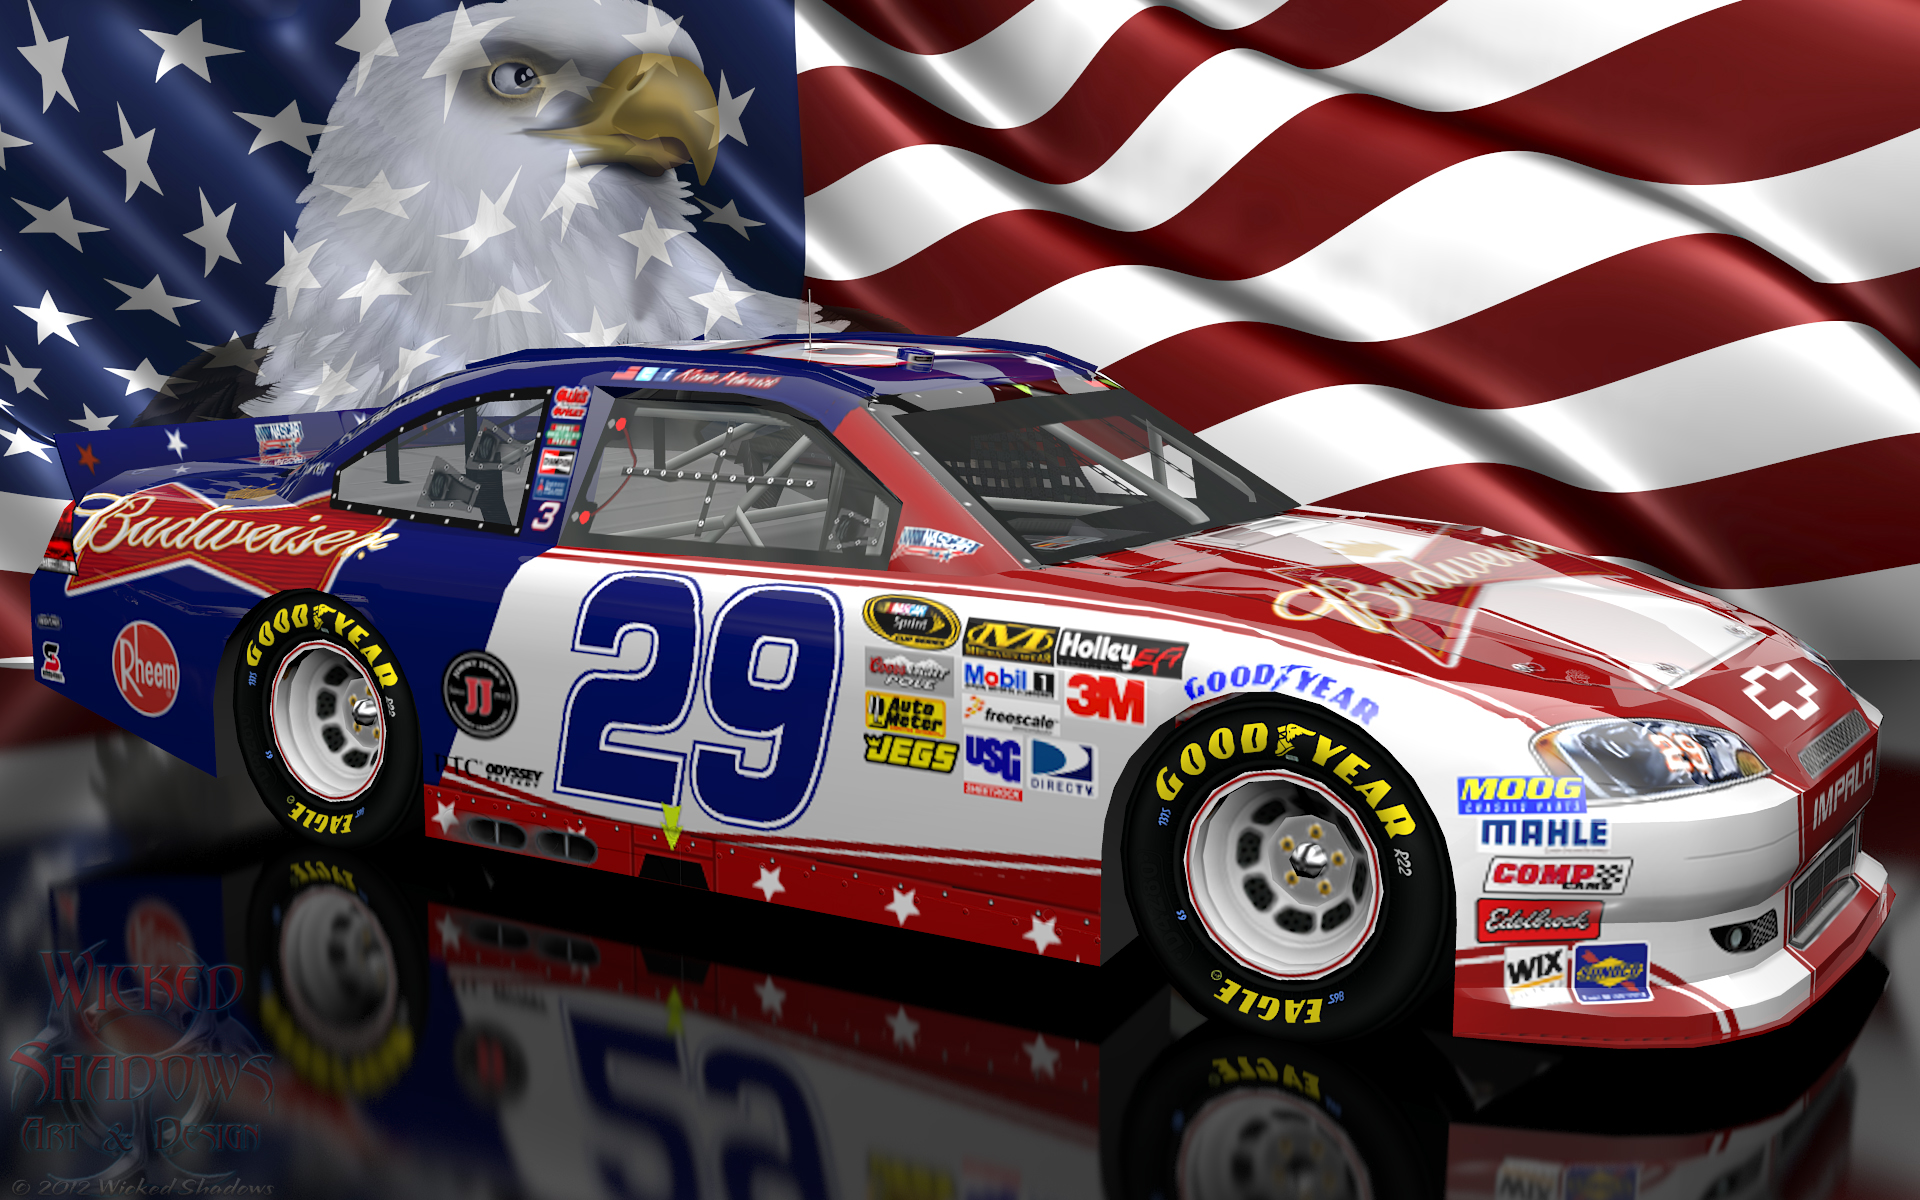 Wallpapers By Wicked Shadows: Kevin Harvick NASCAR Unites ...